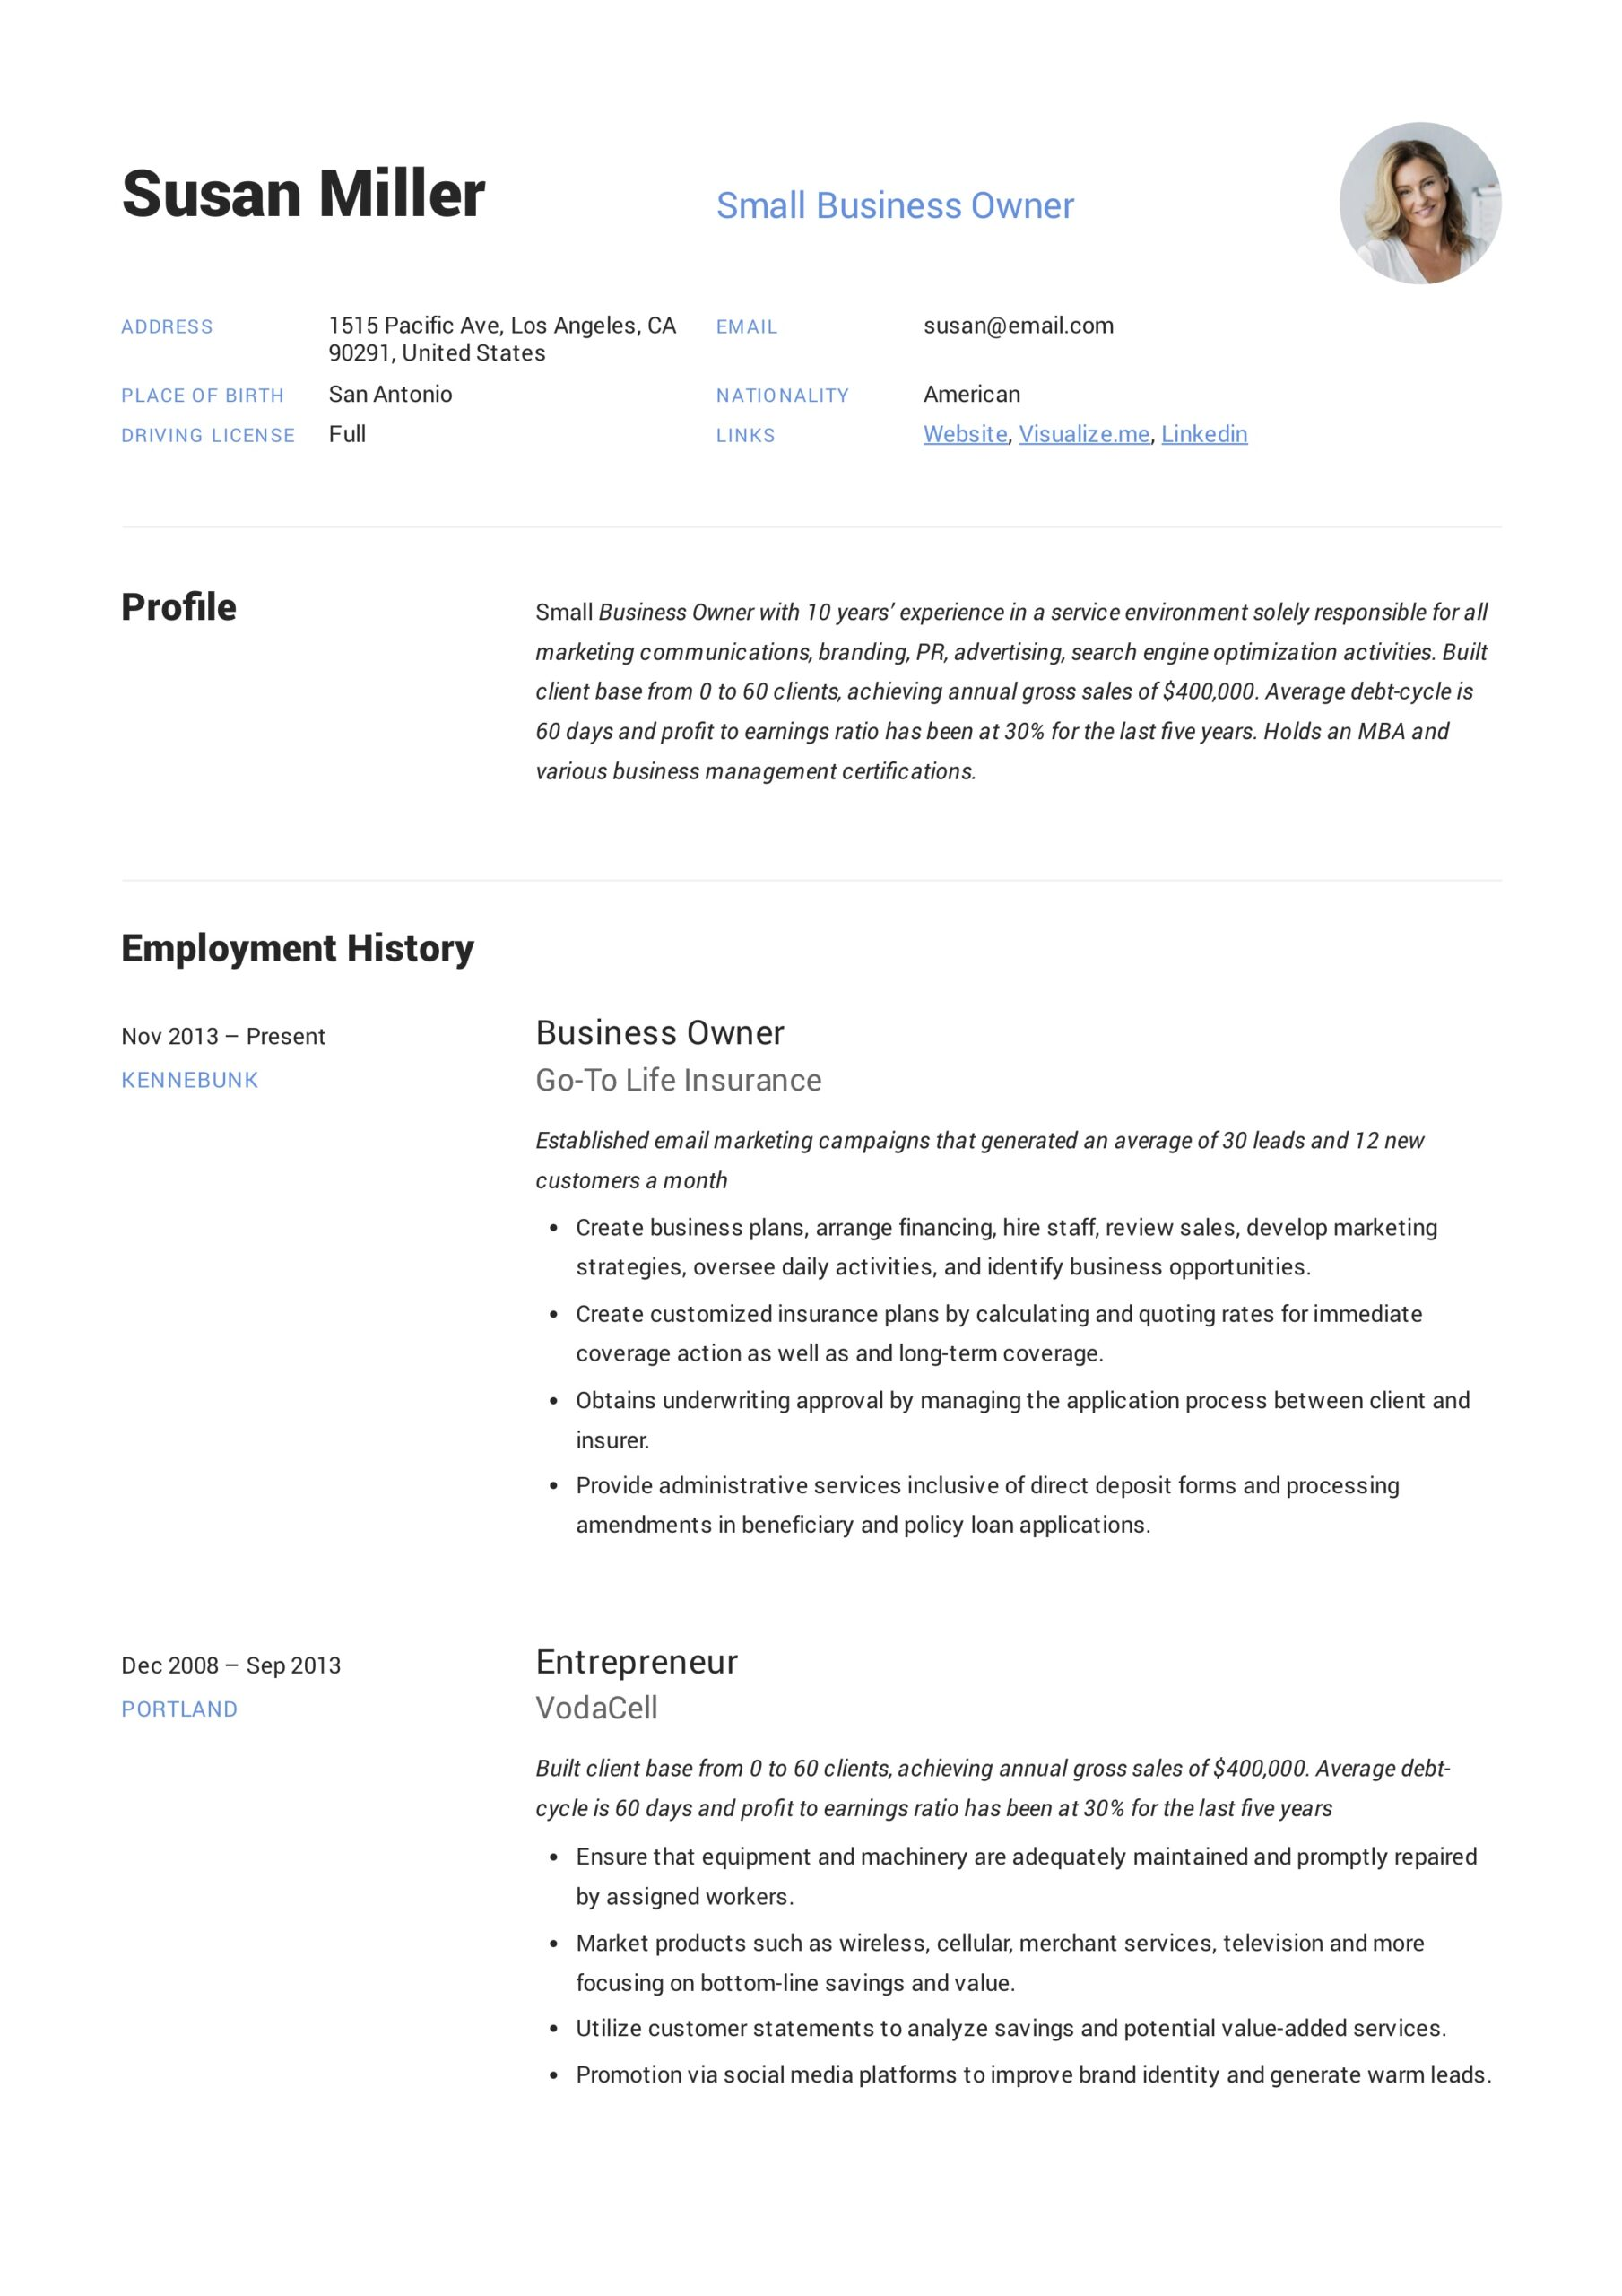 small business owner resume guide examples pdf entrepreneur example safety auditor skills Resume Entrepreneur Resume Examples